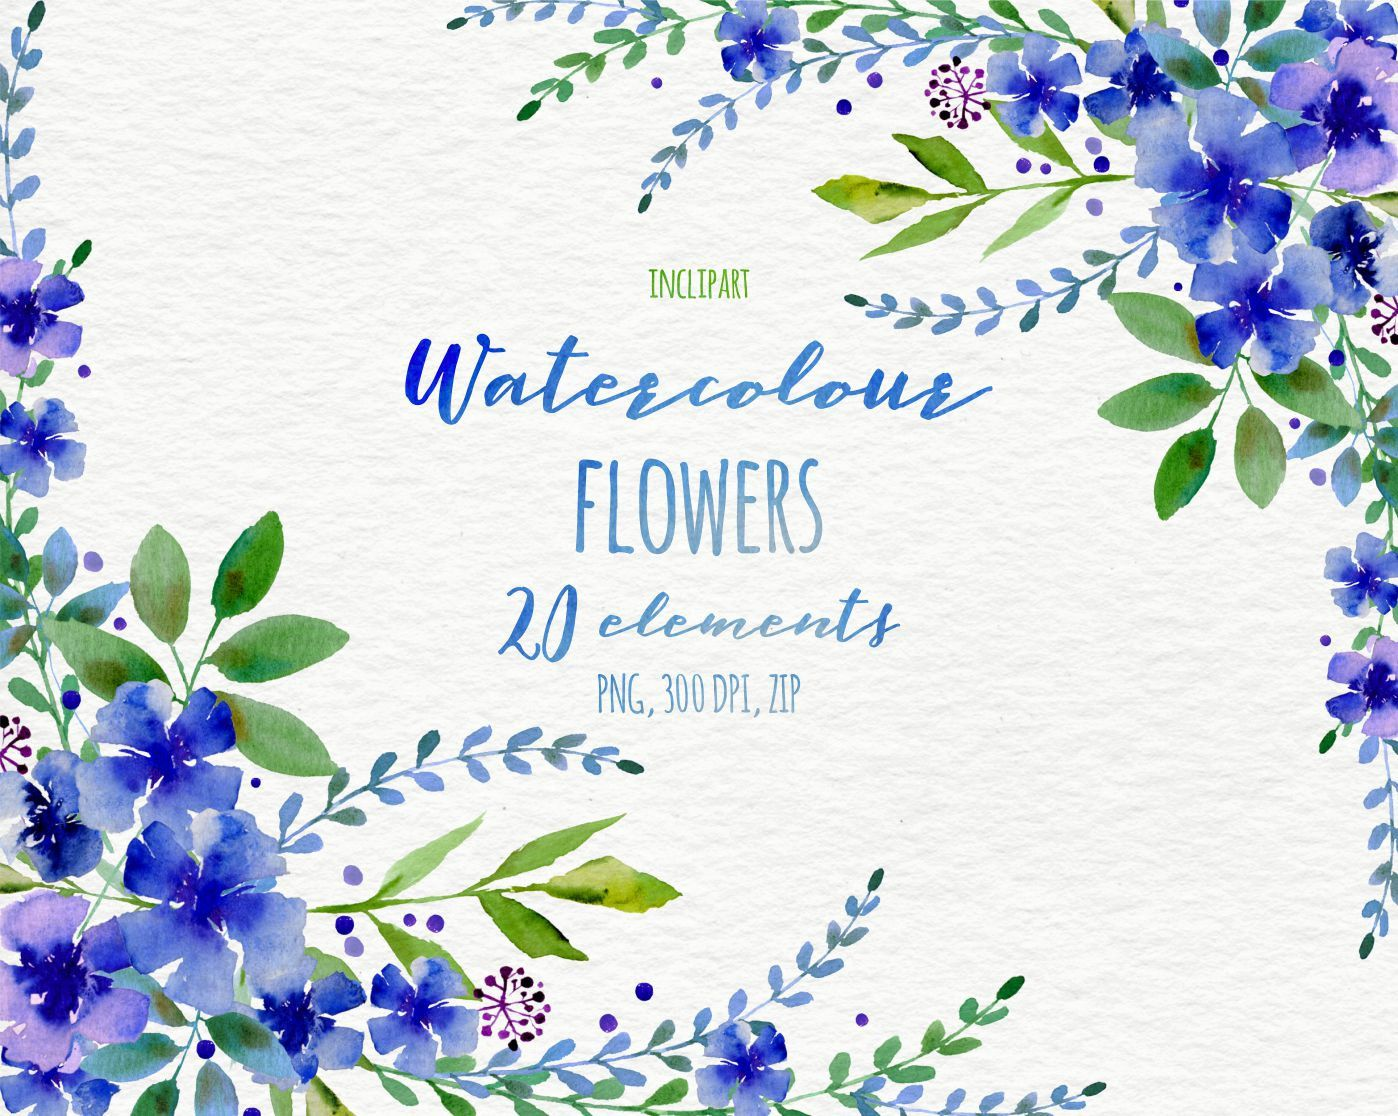 Watercolor Flower Clipart Floral Wreath Corner Garland DIY Digital